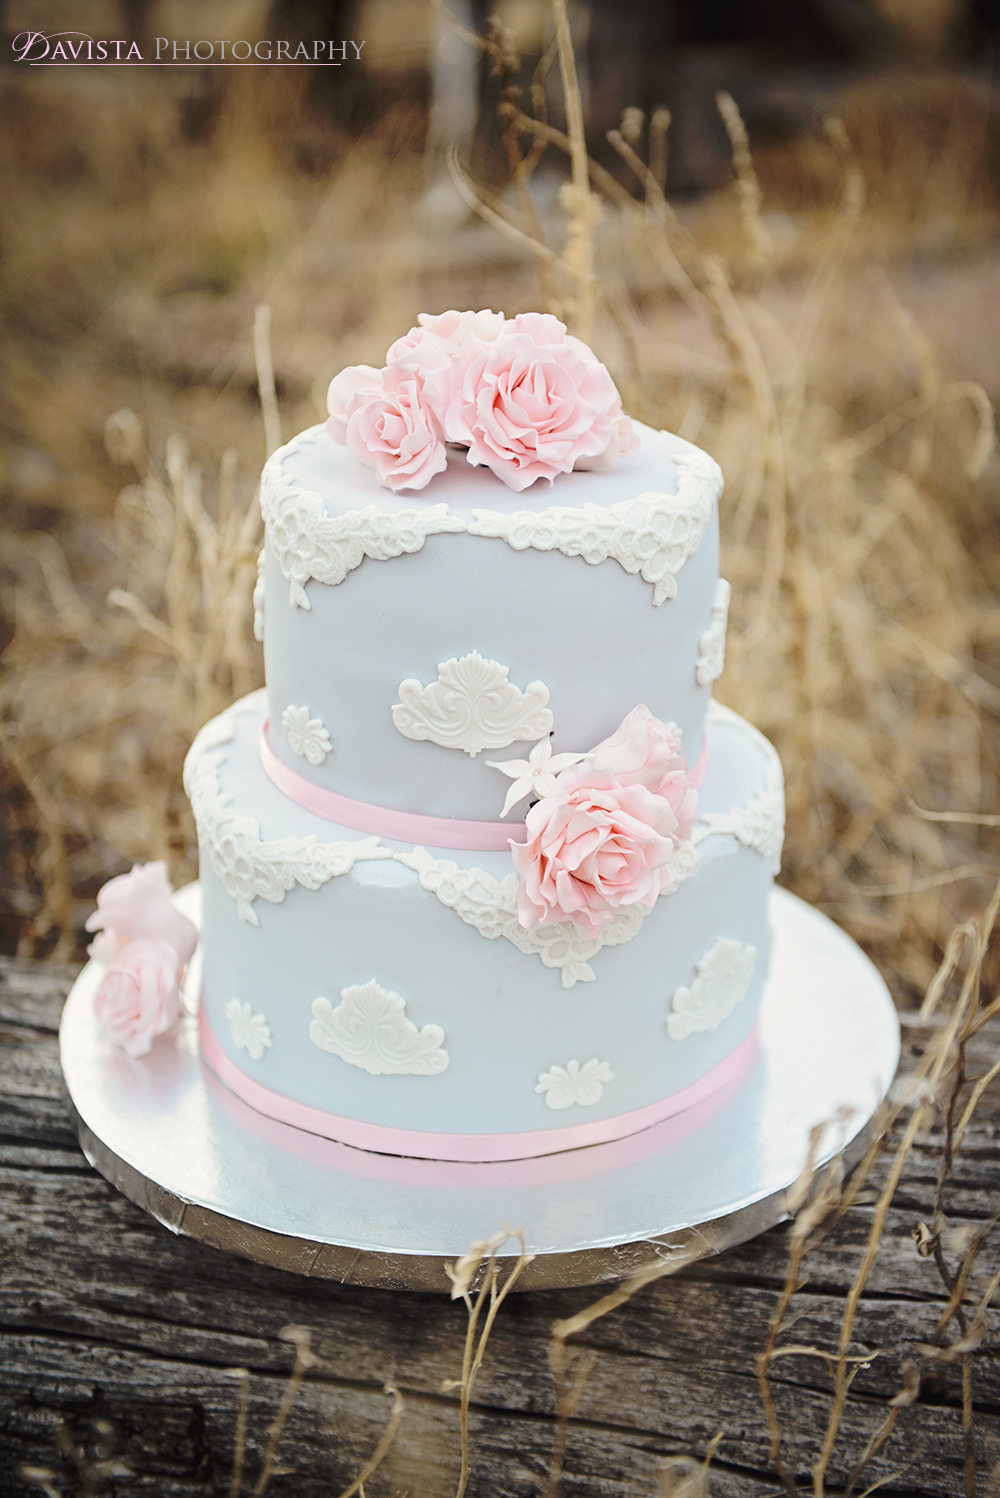 wedding-cake-fashion-photoshoot-1960s-inspired-gray-and-pink